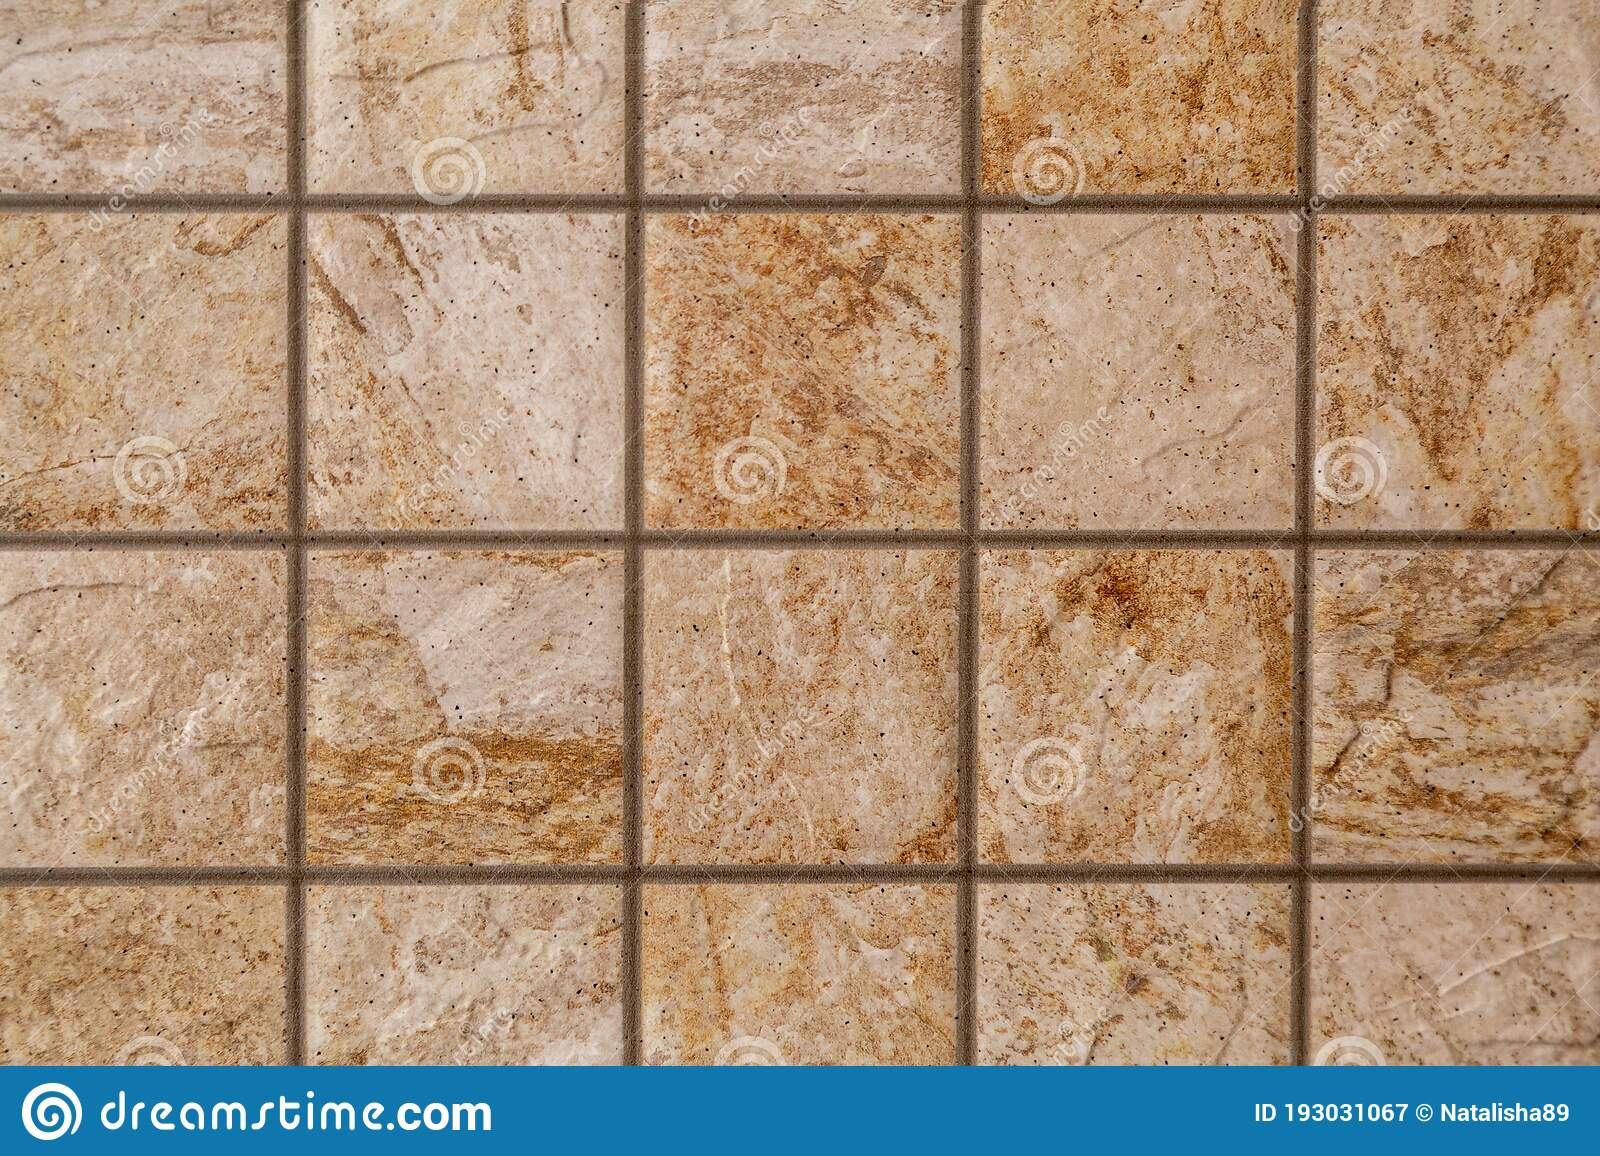 Brown Marble Stone Tiles Background Stock Image Image Of Flooring Decor 193031067